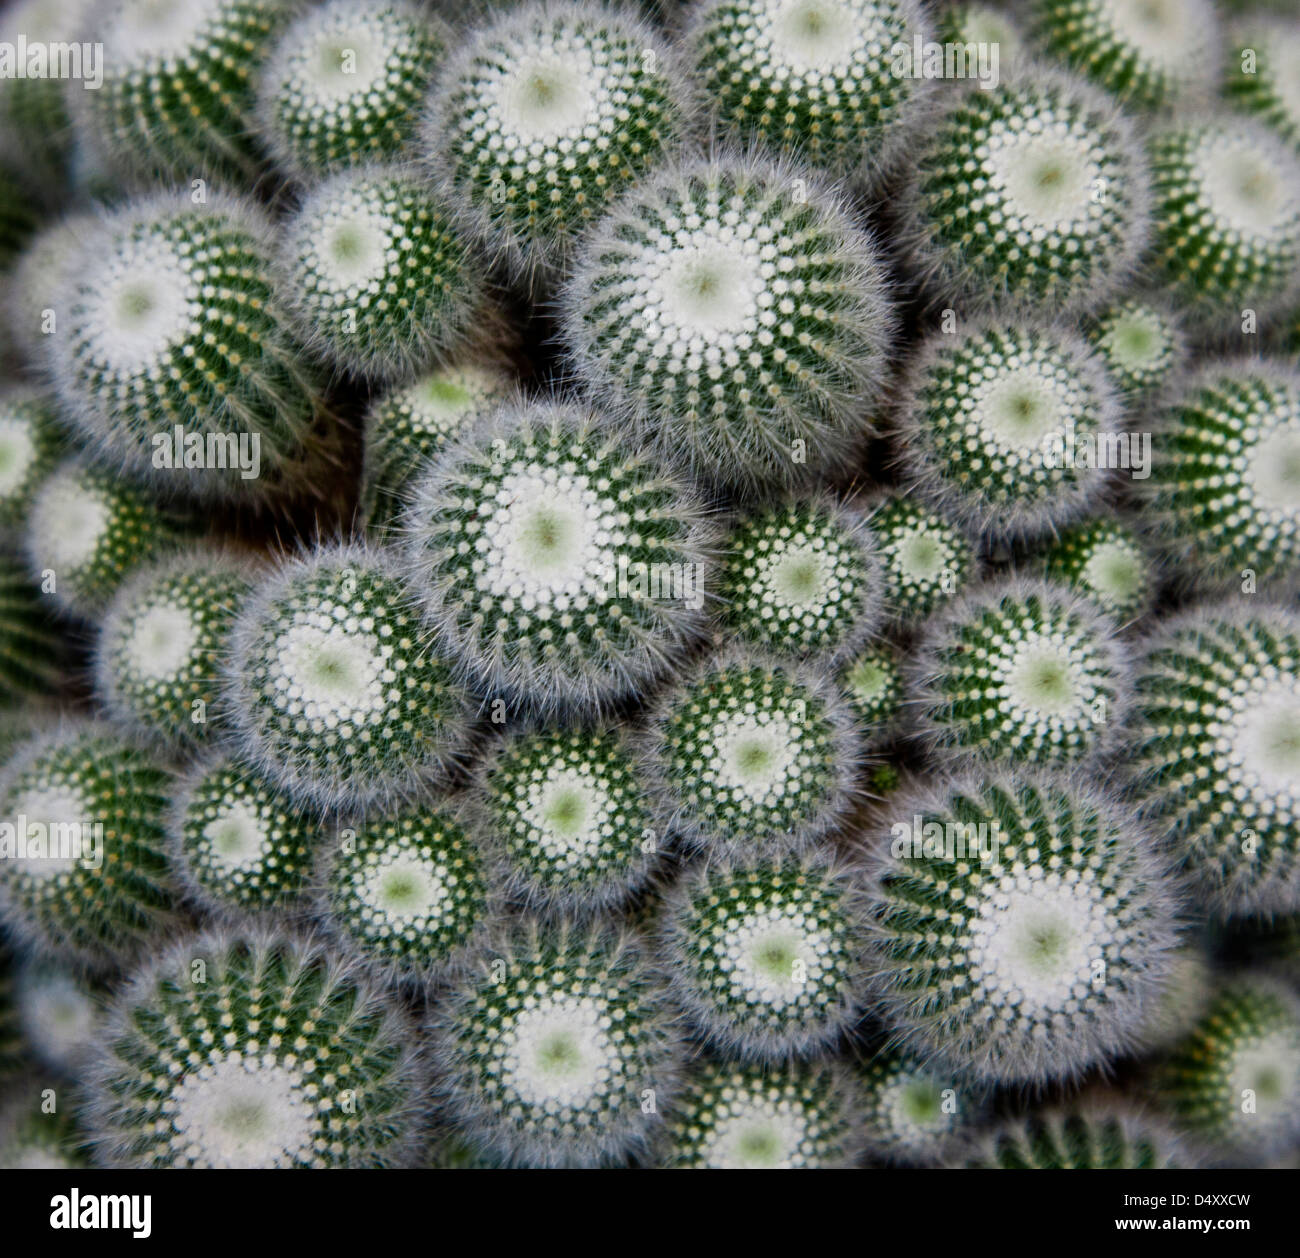 close up abstract pattern of cactus succulents with thorns in a planter pot, potted, USA, US, connected images - Stock Image